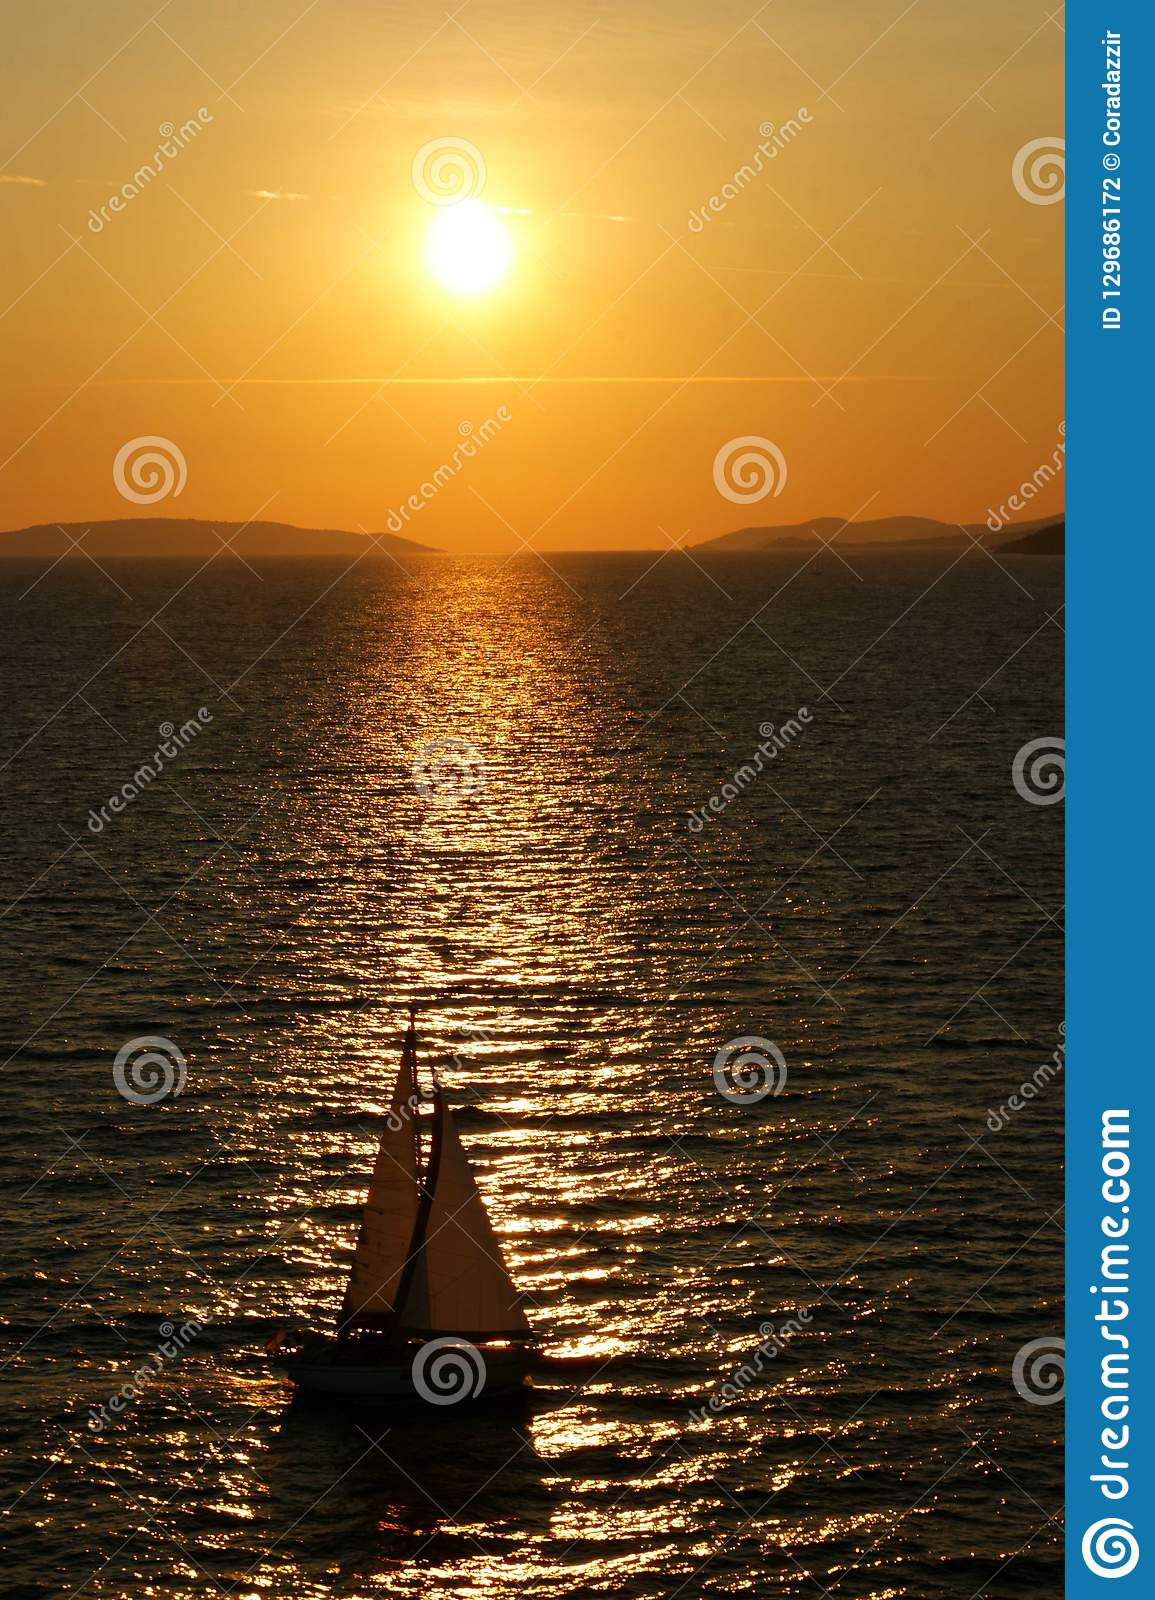 Sunset with boat on Adriatic Sea